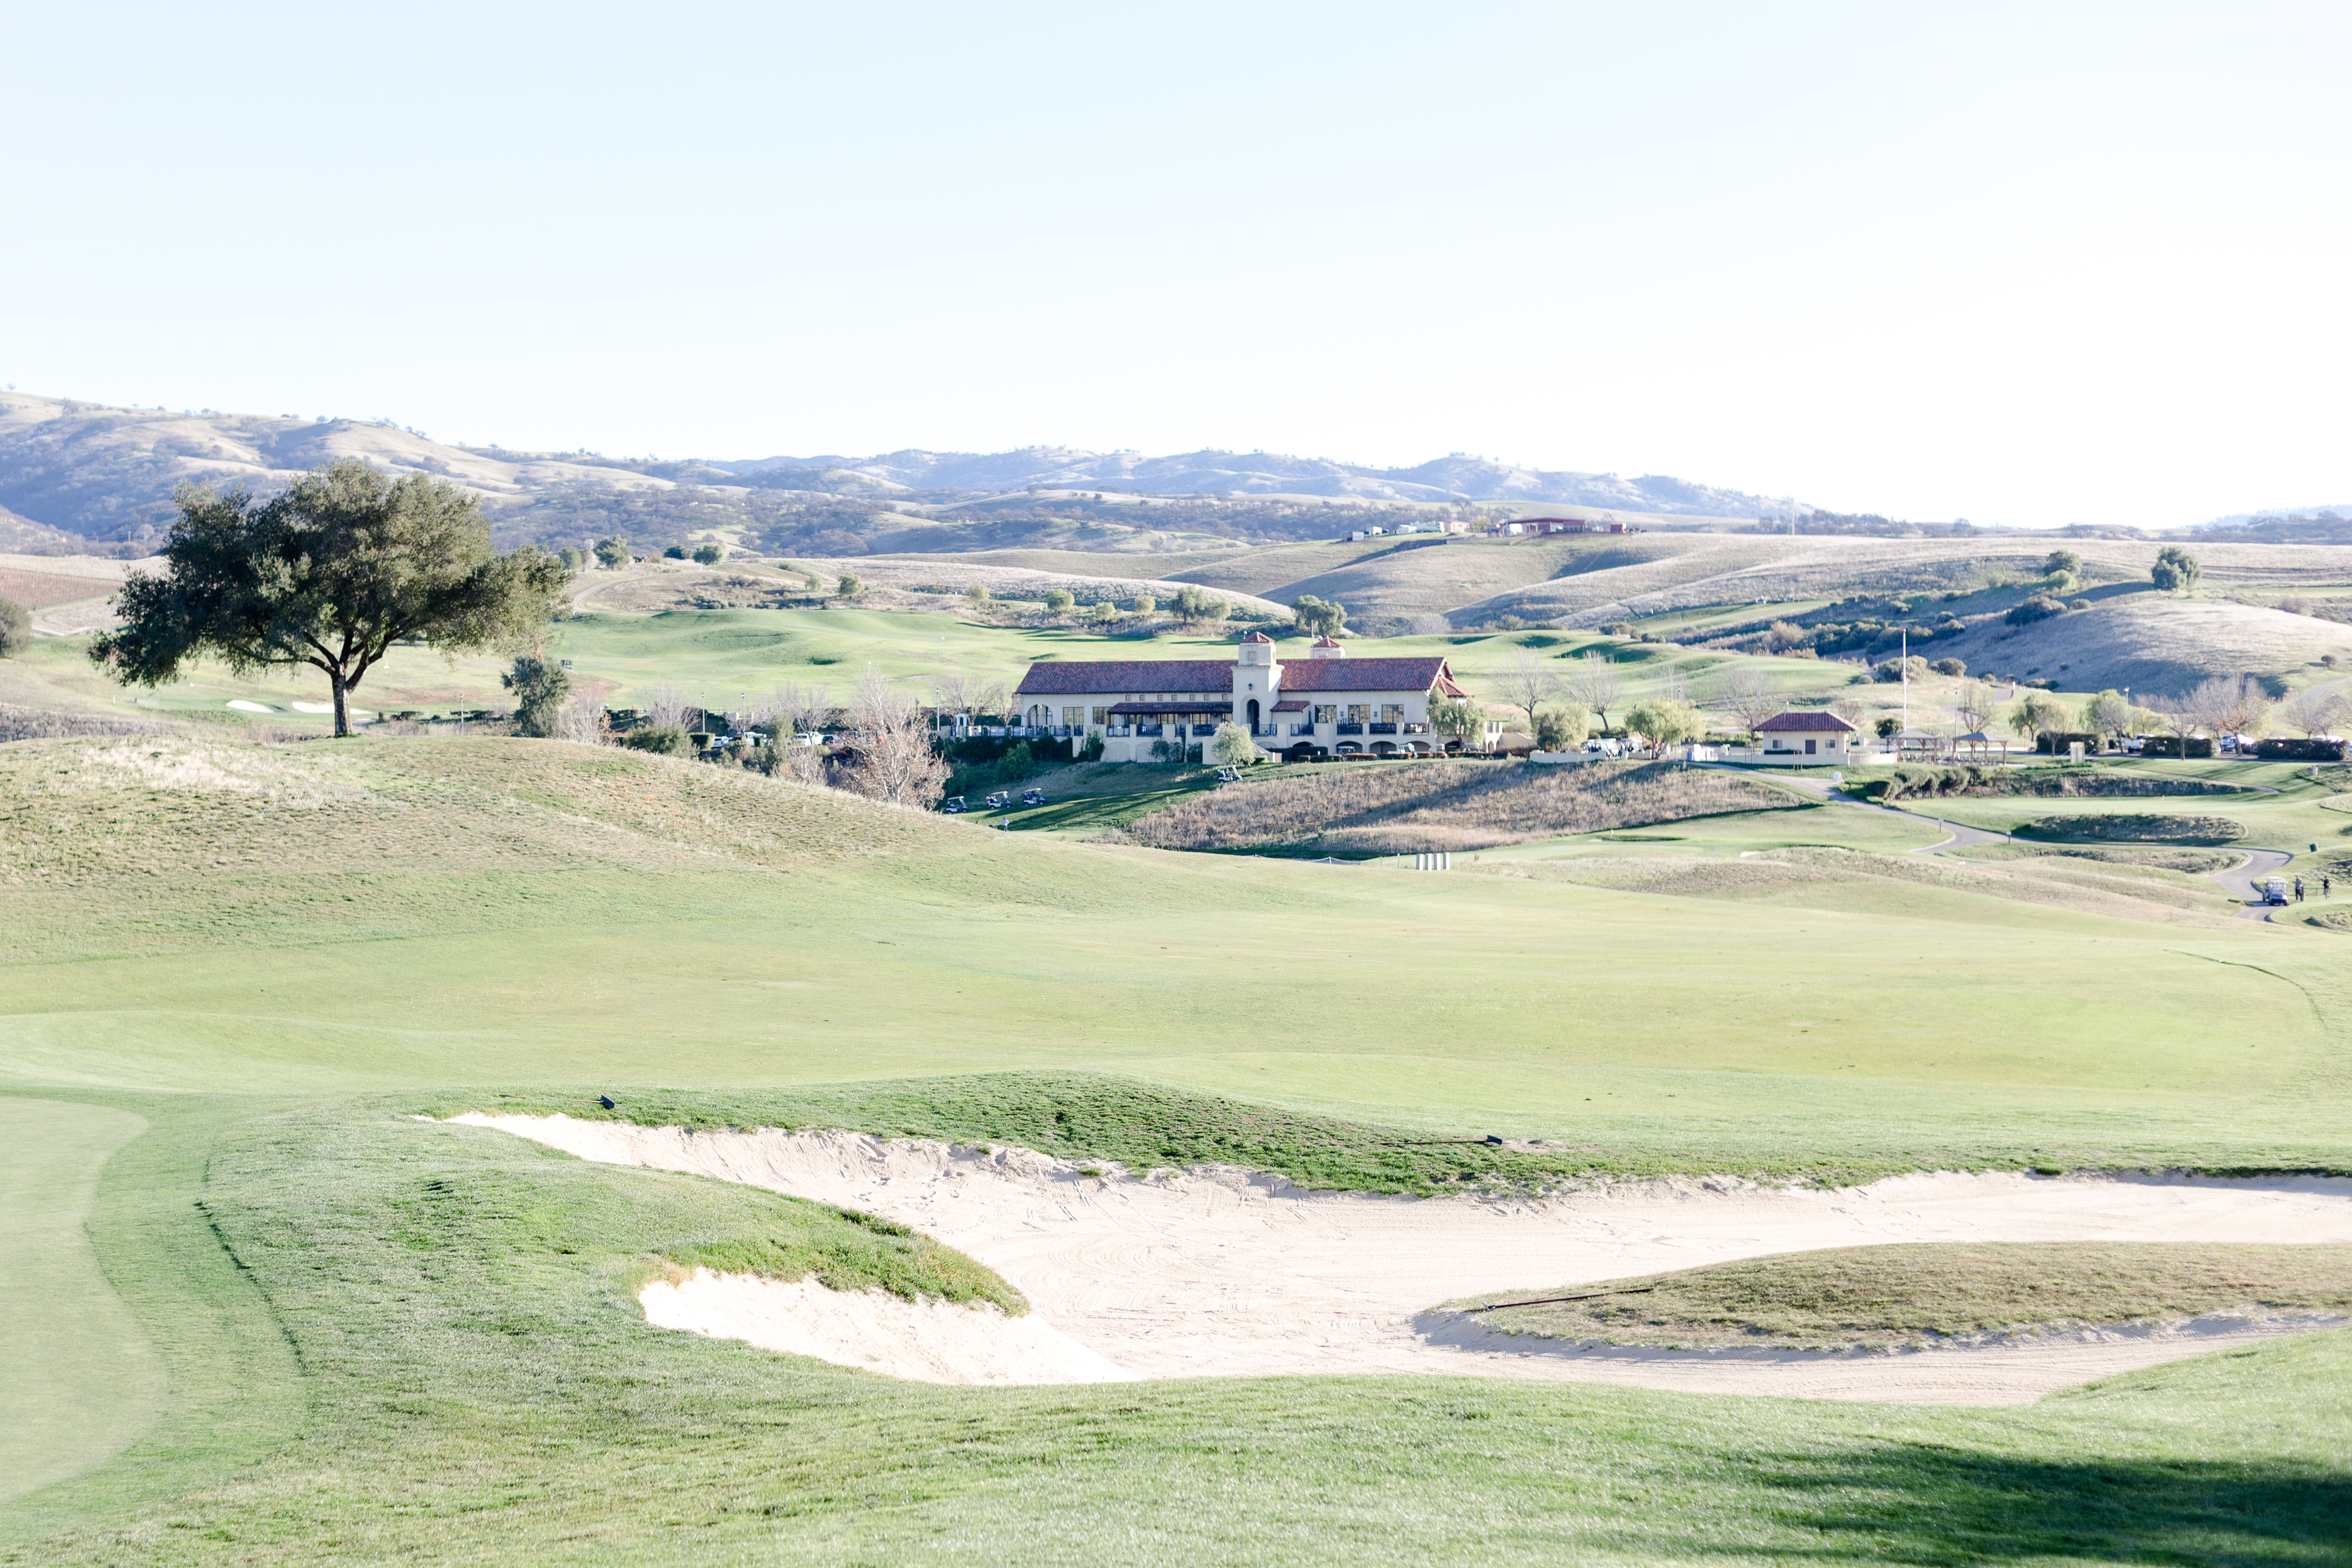 View of the Poppy Ridge reception area from the golf course